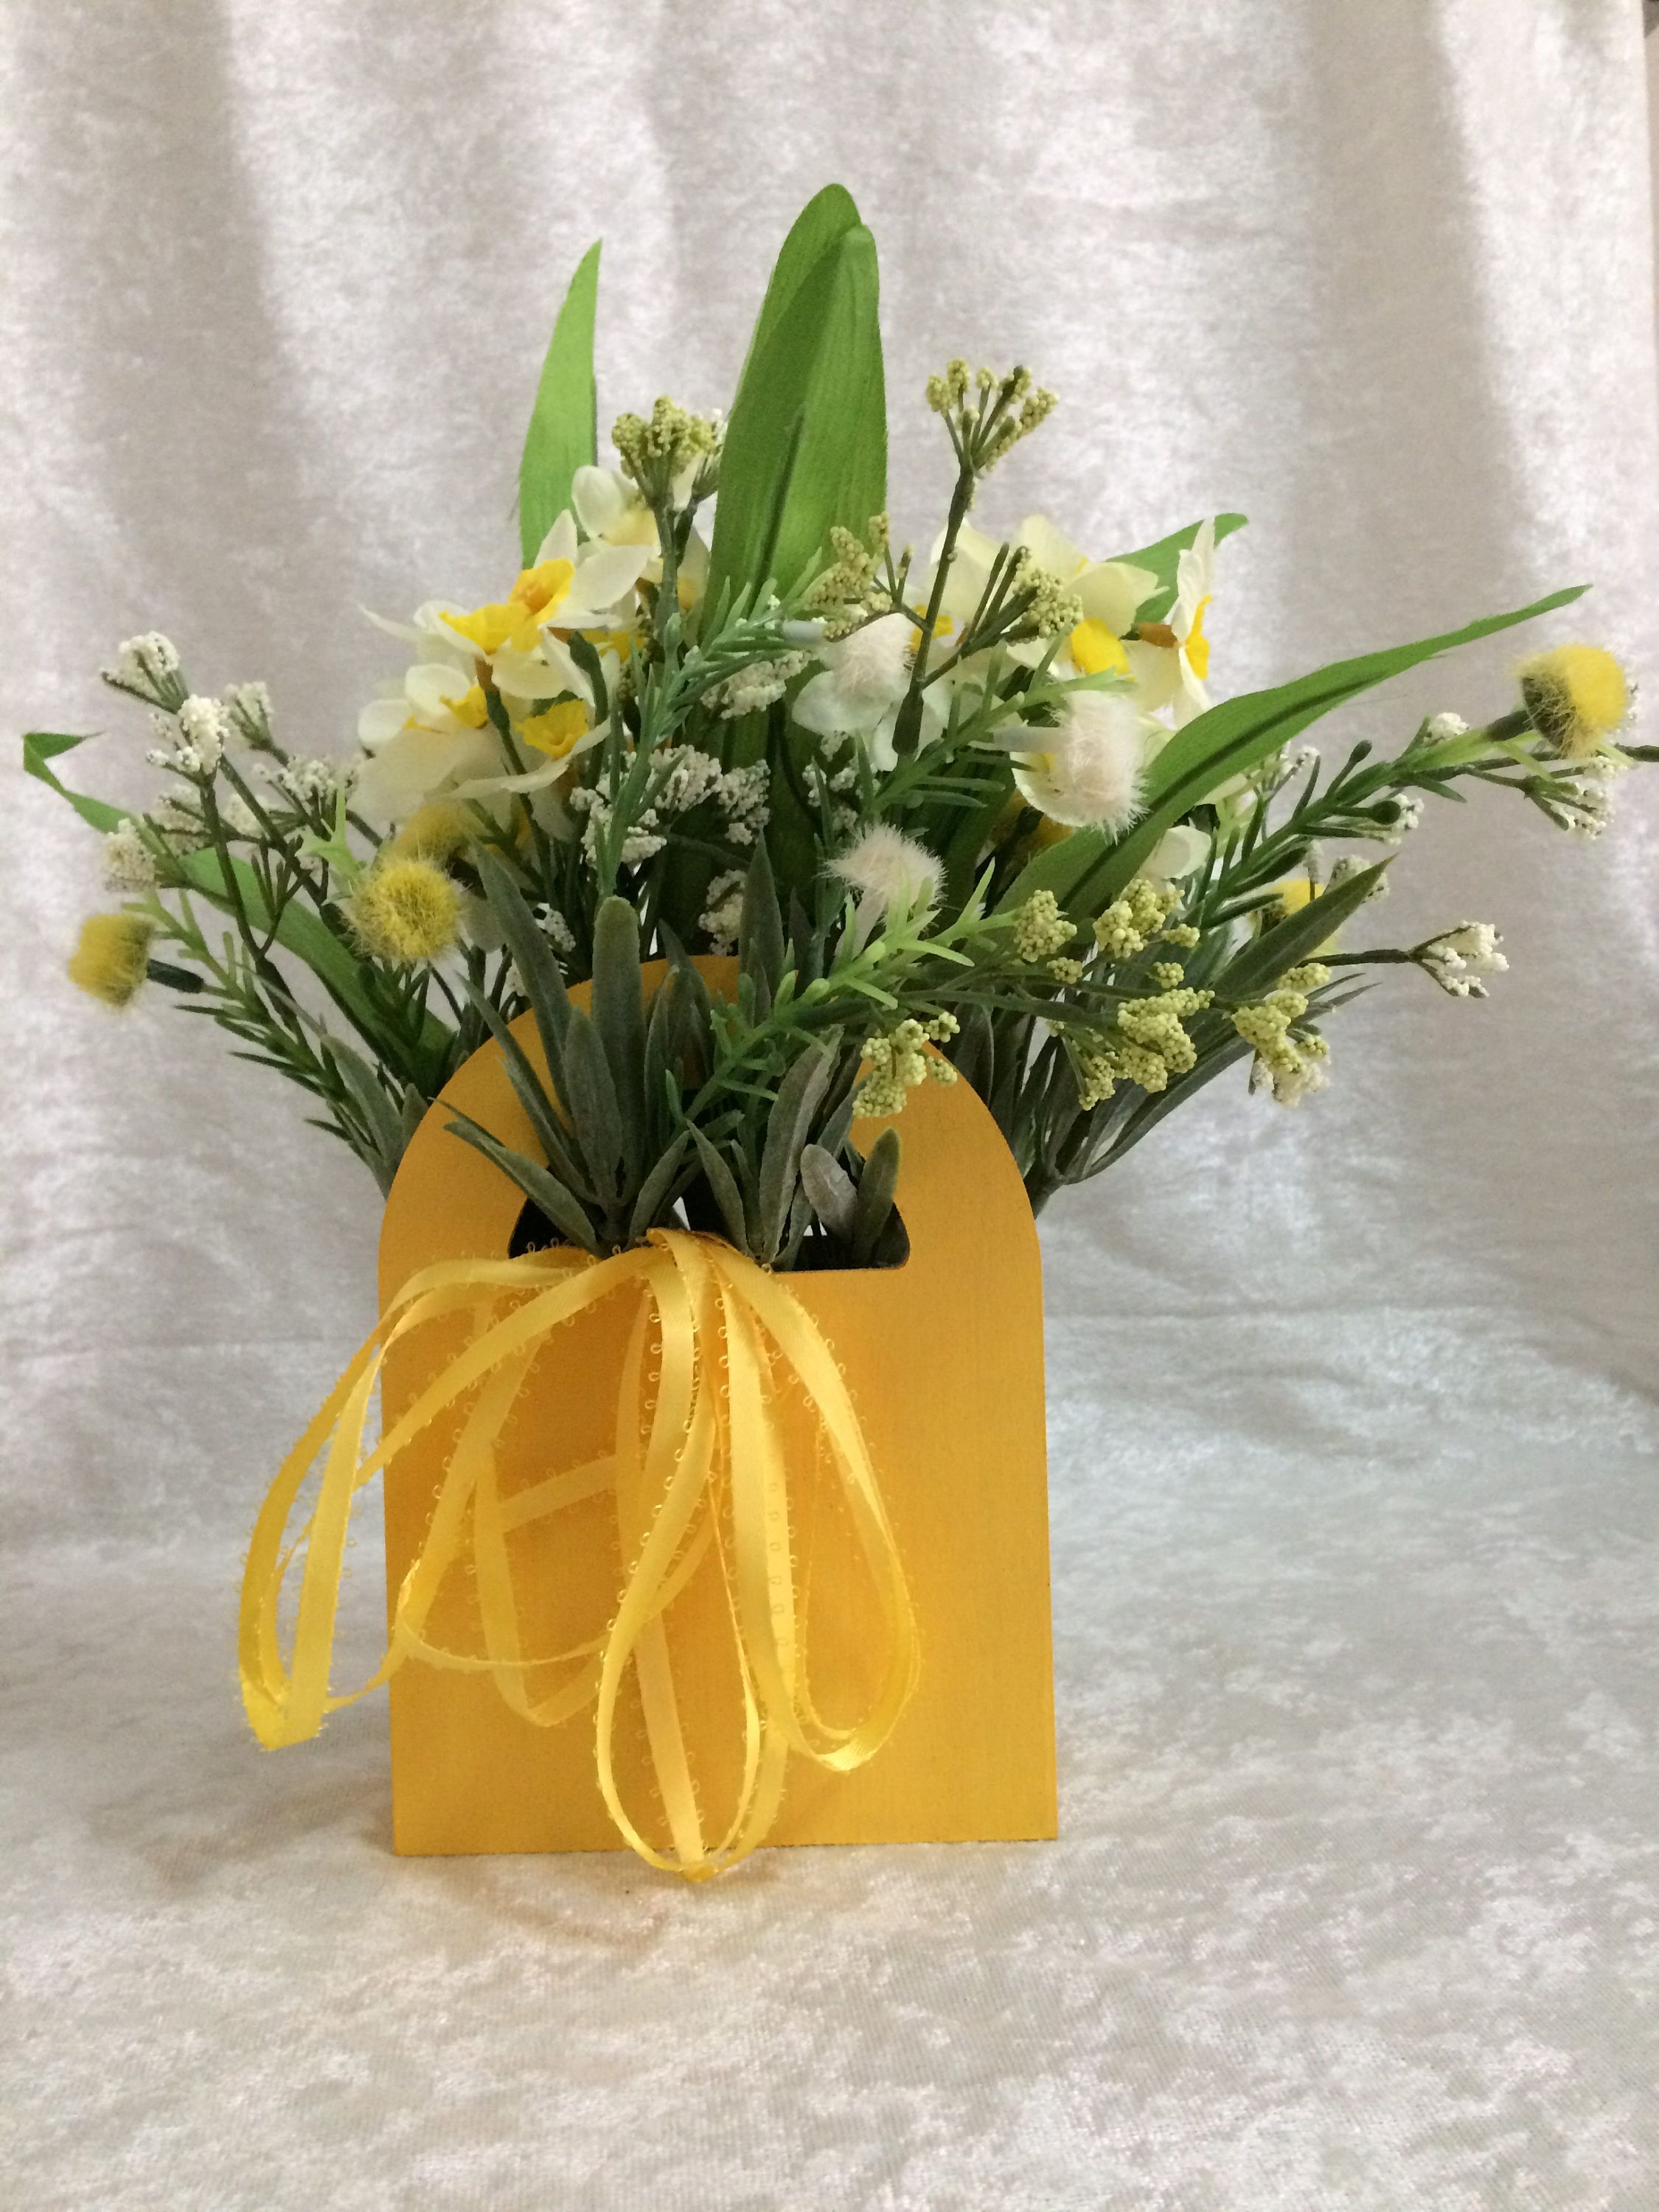 Daffodill flower arrangement silk flower centerpiece artificial daffodill flower arrangement silk flower centerpiece artificial arrangement small silk flower arrangement mightylinksfo